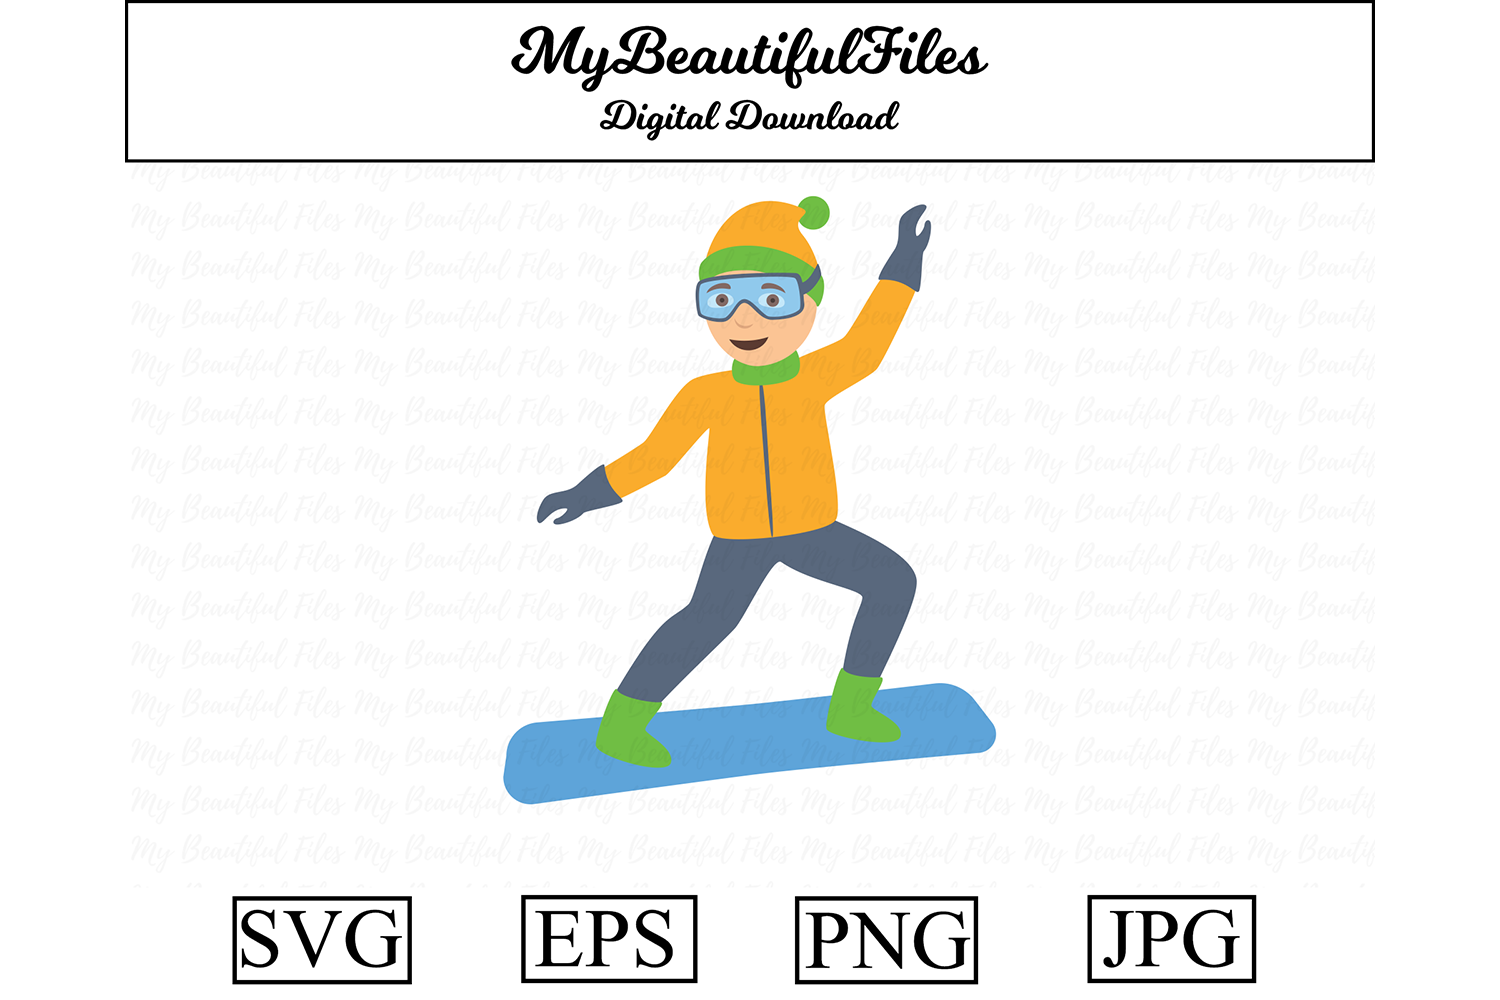 Snowboarder Clipart Illustration Graphic By Mybeautifulfiles Creative Fabrica